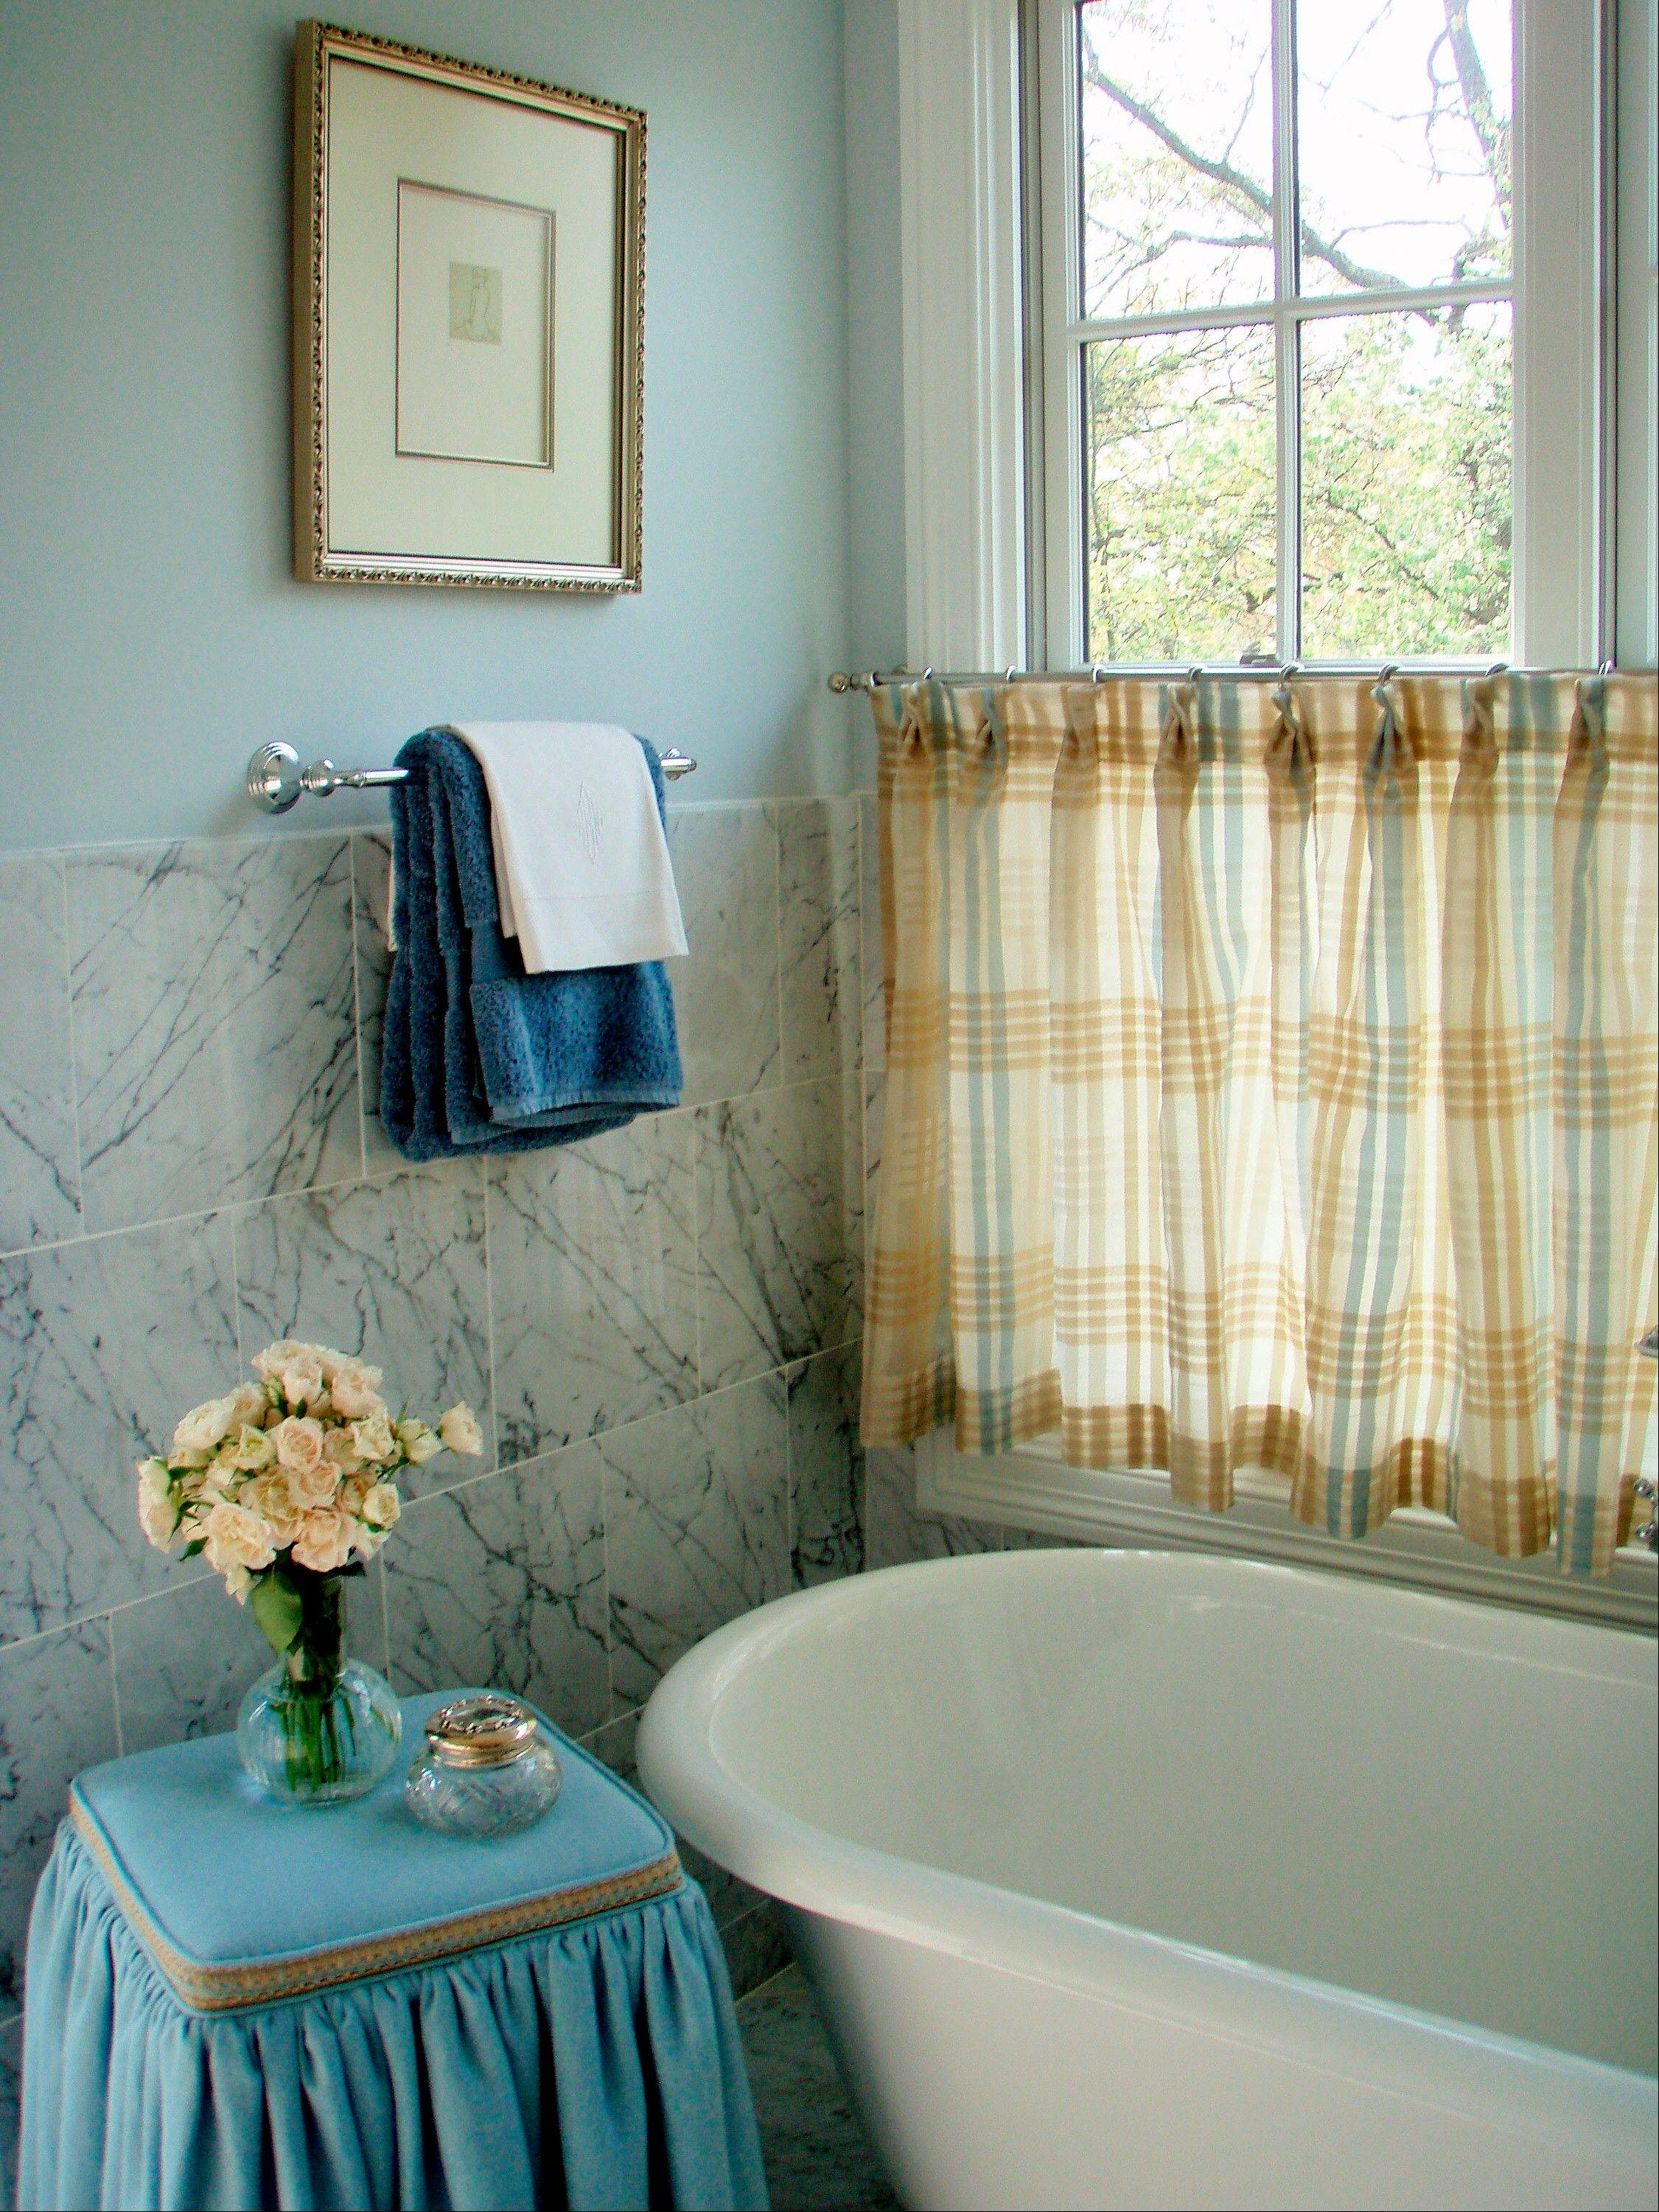 Atlanta-area designer Mallory Mathison uses a simple window dressing in this bathroom.